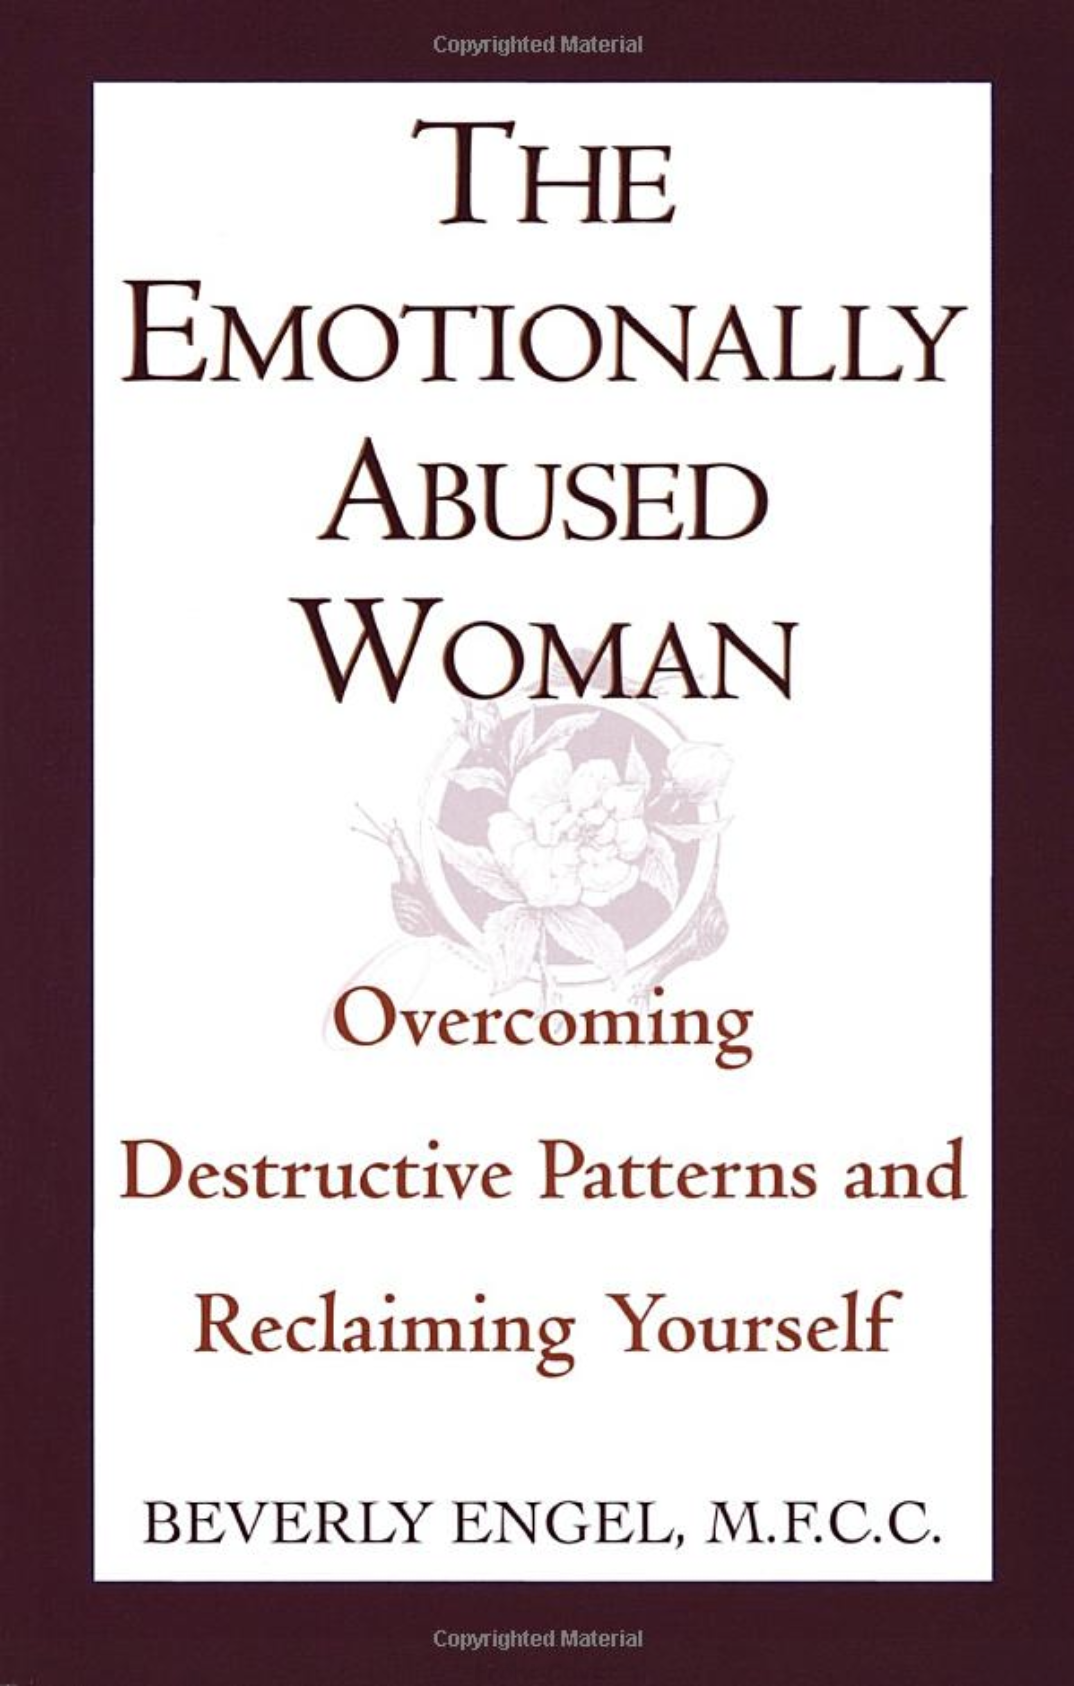 The Emotionally Abused Woman  By Beverly Engel    Shop now